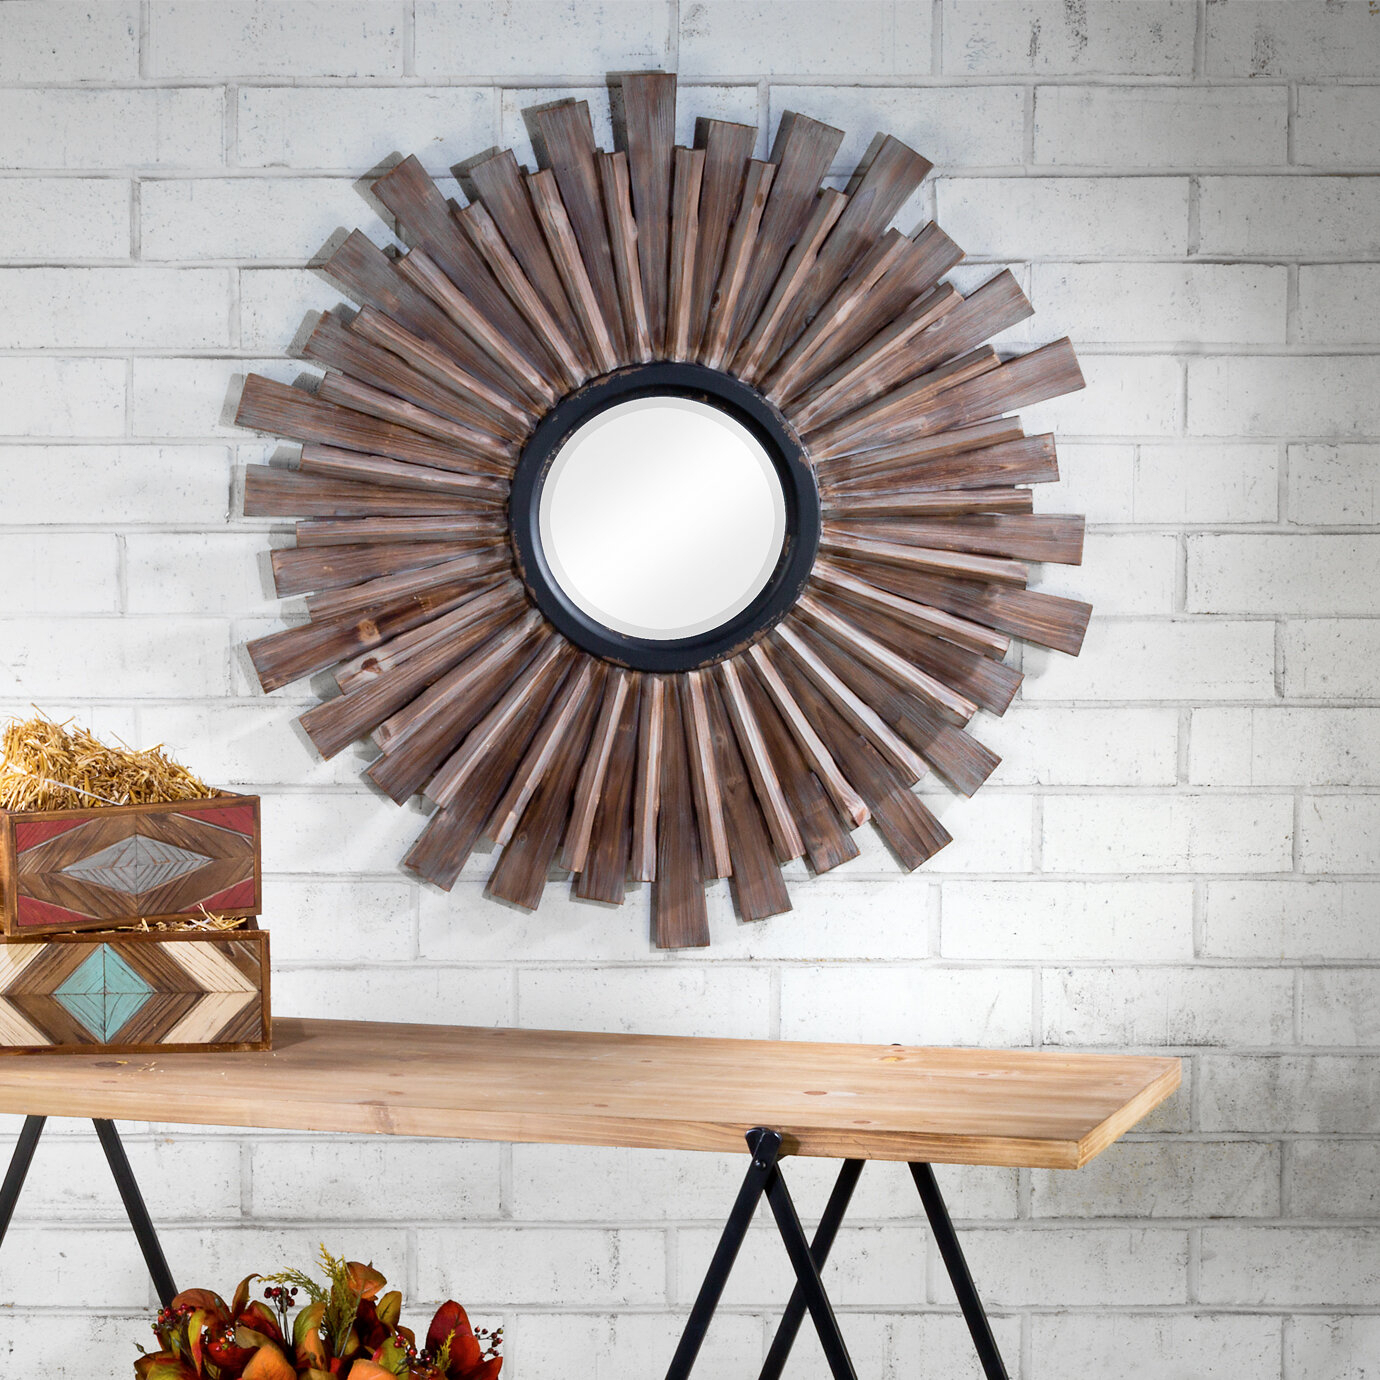 "Large & Oversized (Over 32"" High) Sunburst Mirrors You'll For Diamondville Modern & Contemporary Distressed Accent Mirrors (Image 10 of 20)"